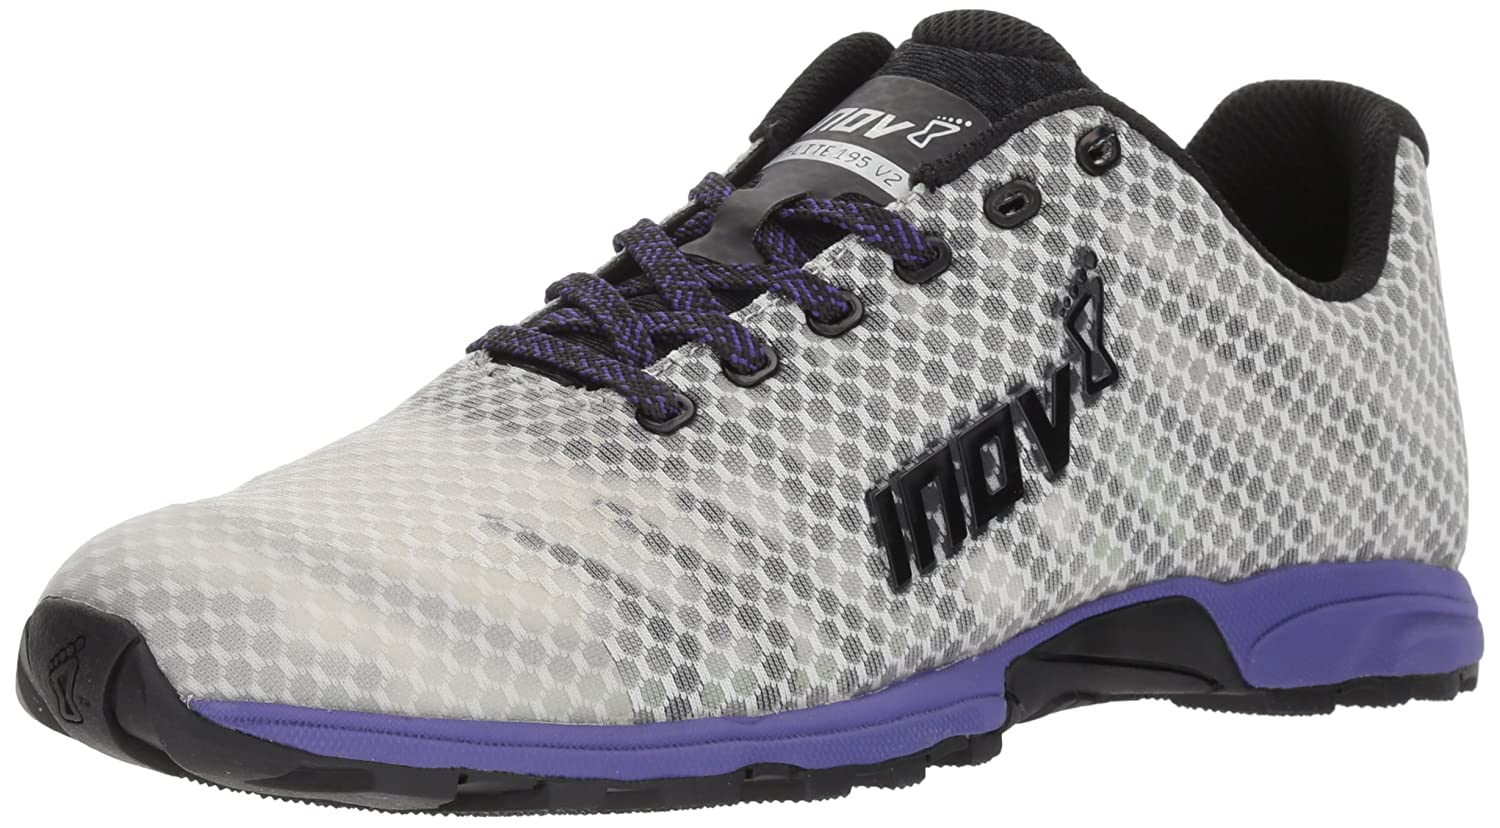 Inov-8 Women's F-Lite 195 V2 (W) Cross Trainer B073VSCPJ4 8.5 N US|Grey/Purple